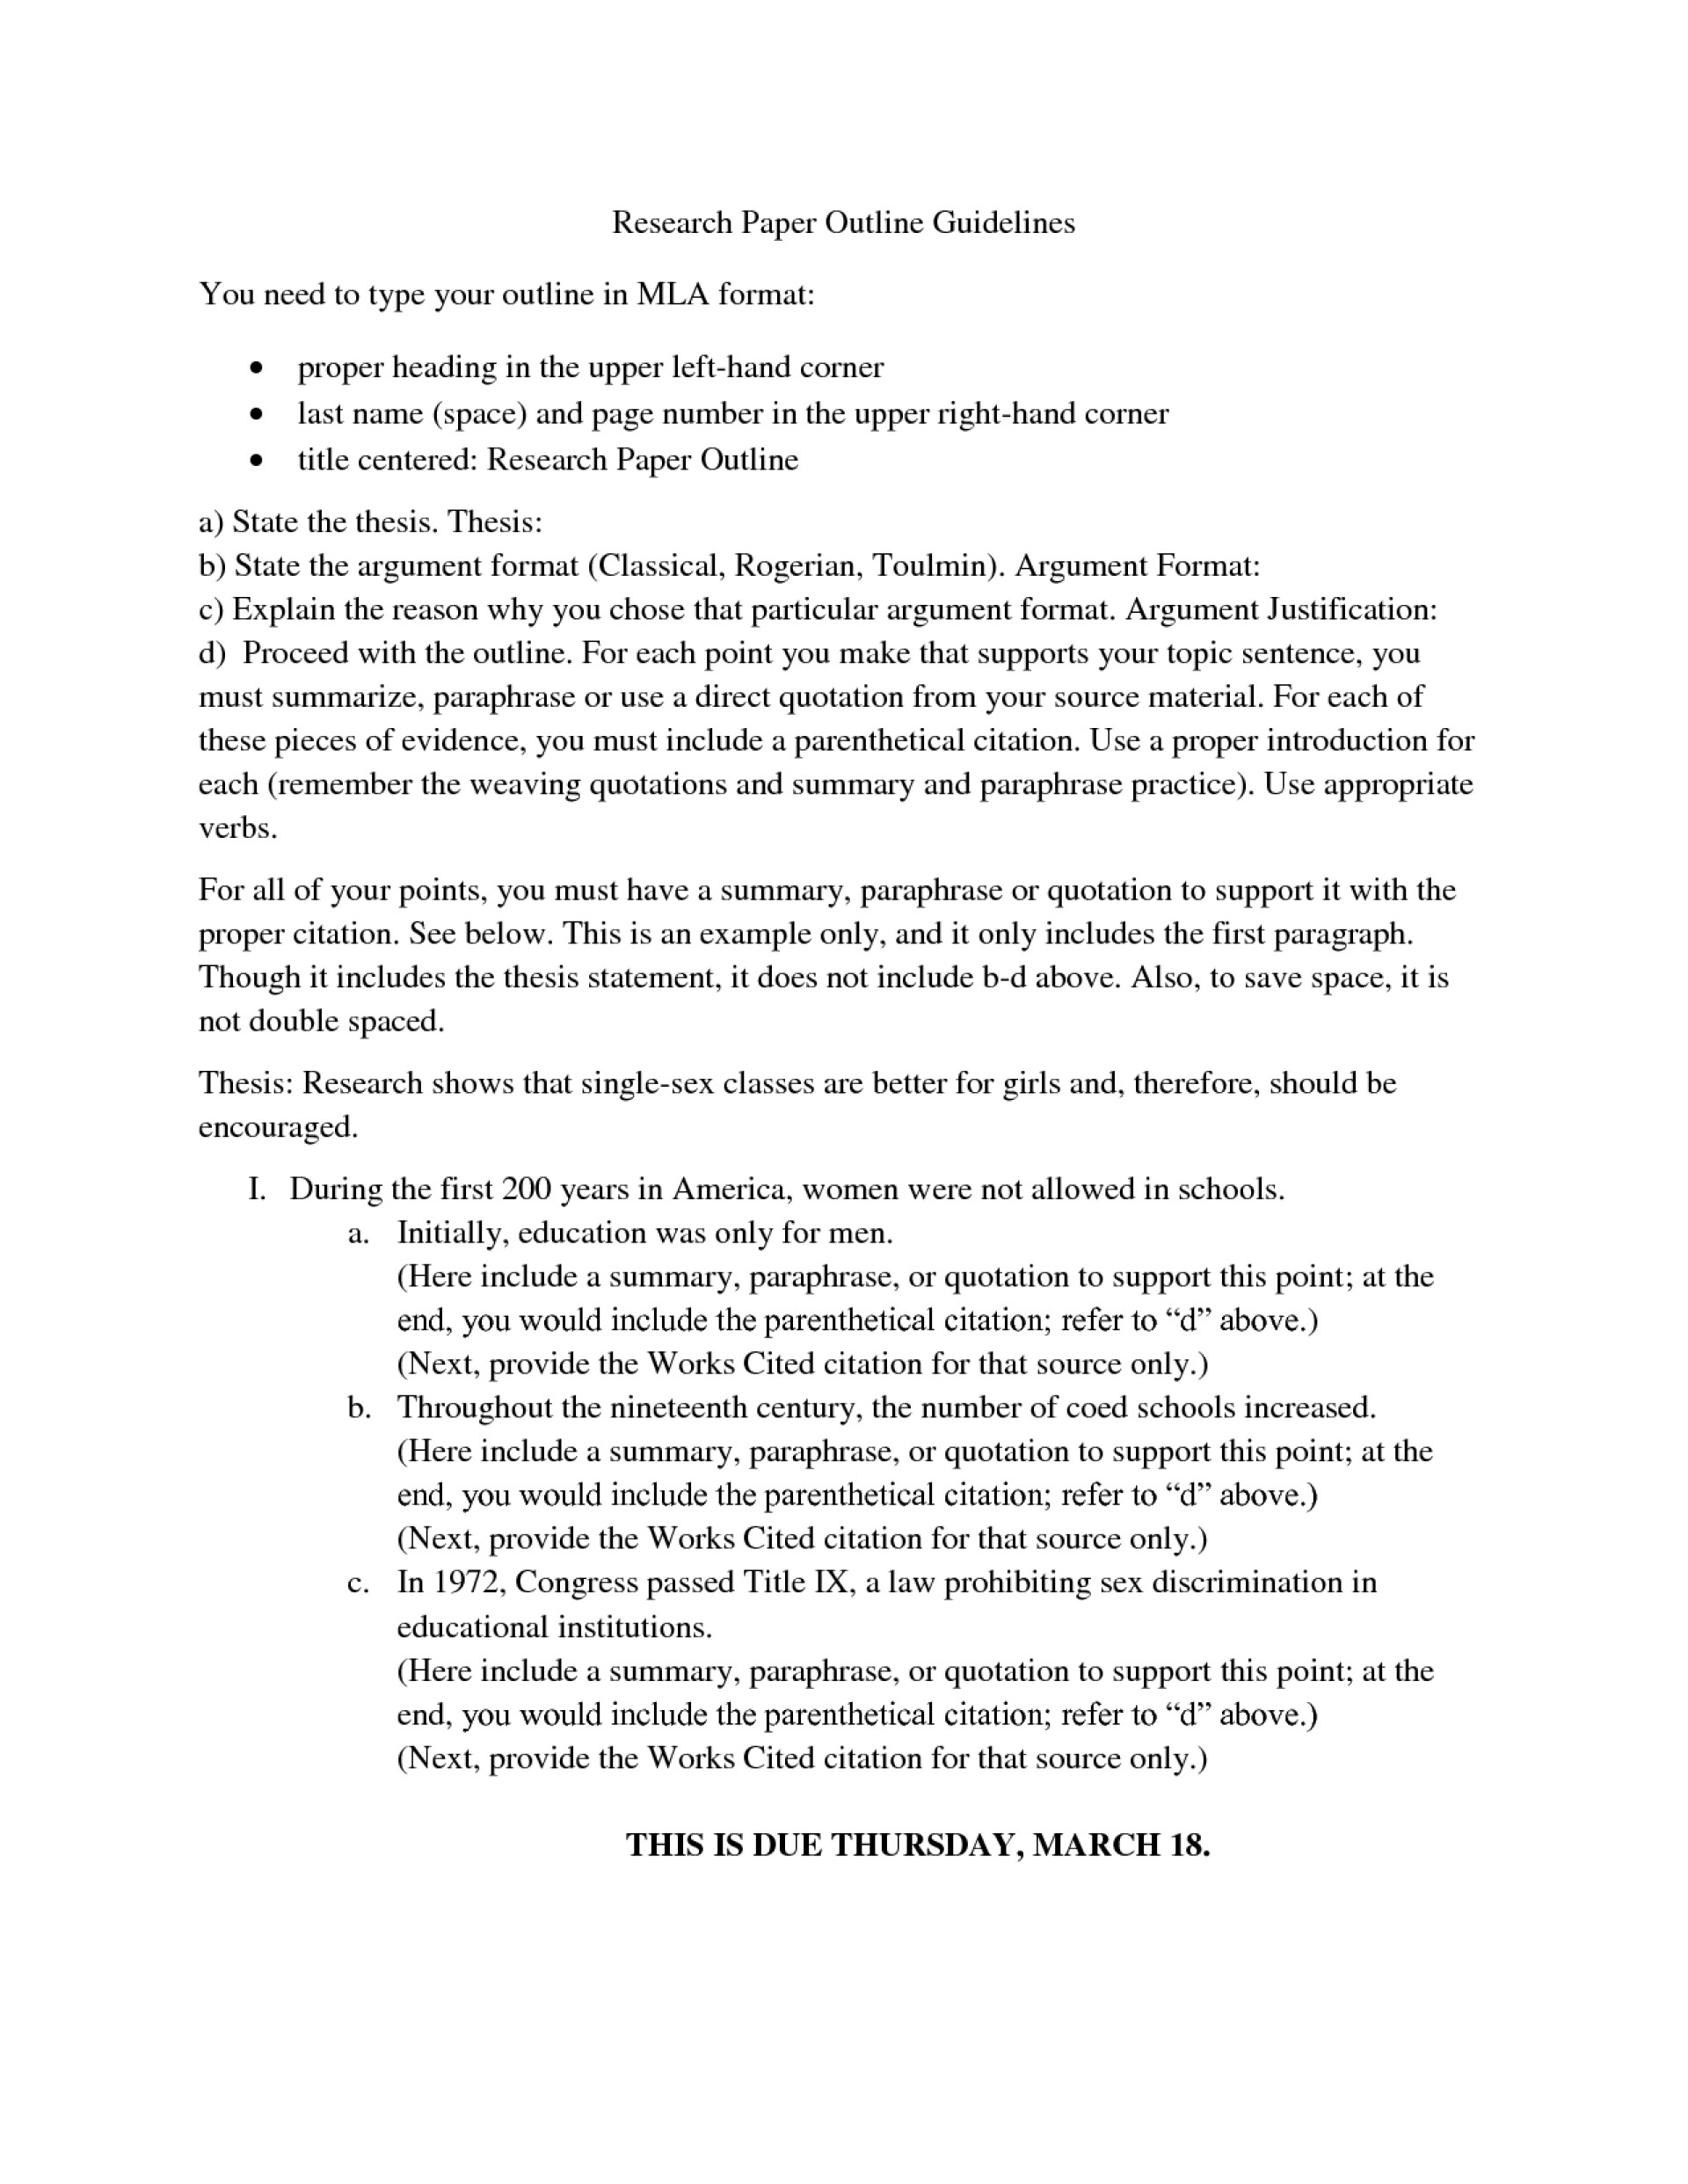 017 Research Paper Outline Format For Mla Style Proper 472292 Formidable Sample 1920